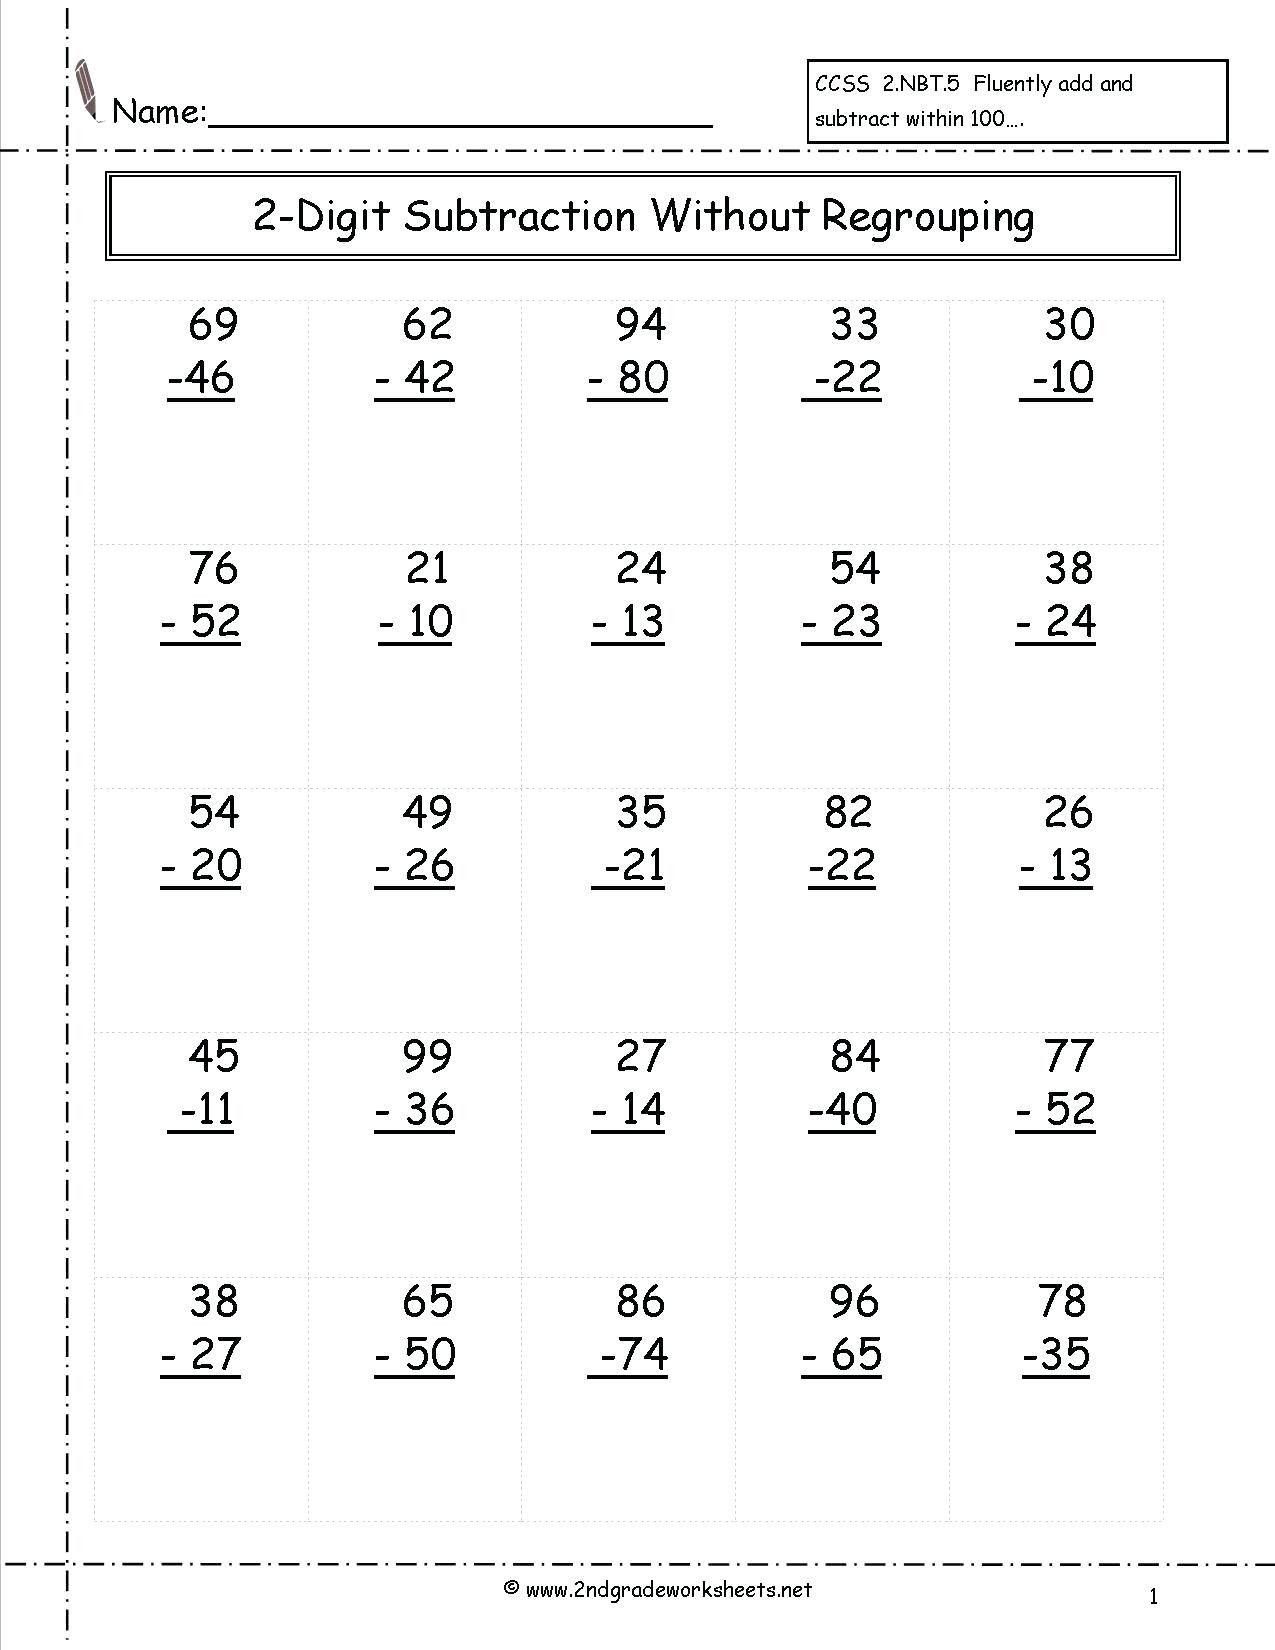 hight resolution of Subtraction Worksheets for Grade 1 Of 5 Free Math Worksheets First Grade 1 Addition  Add In Columns 2 Digit Plus 1 Digit No Regroupi - Free Templates